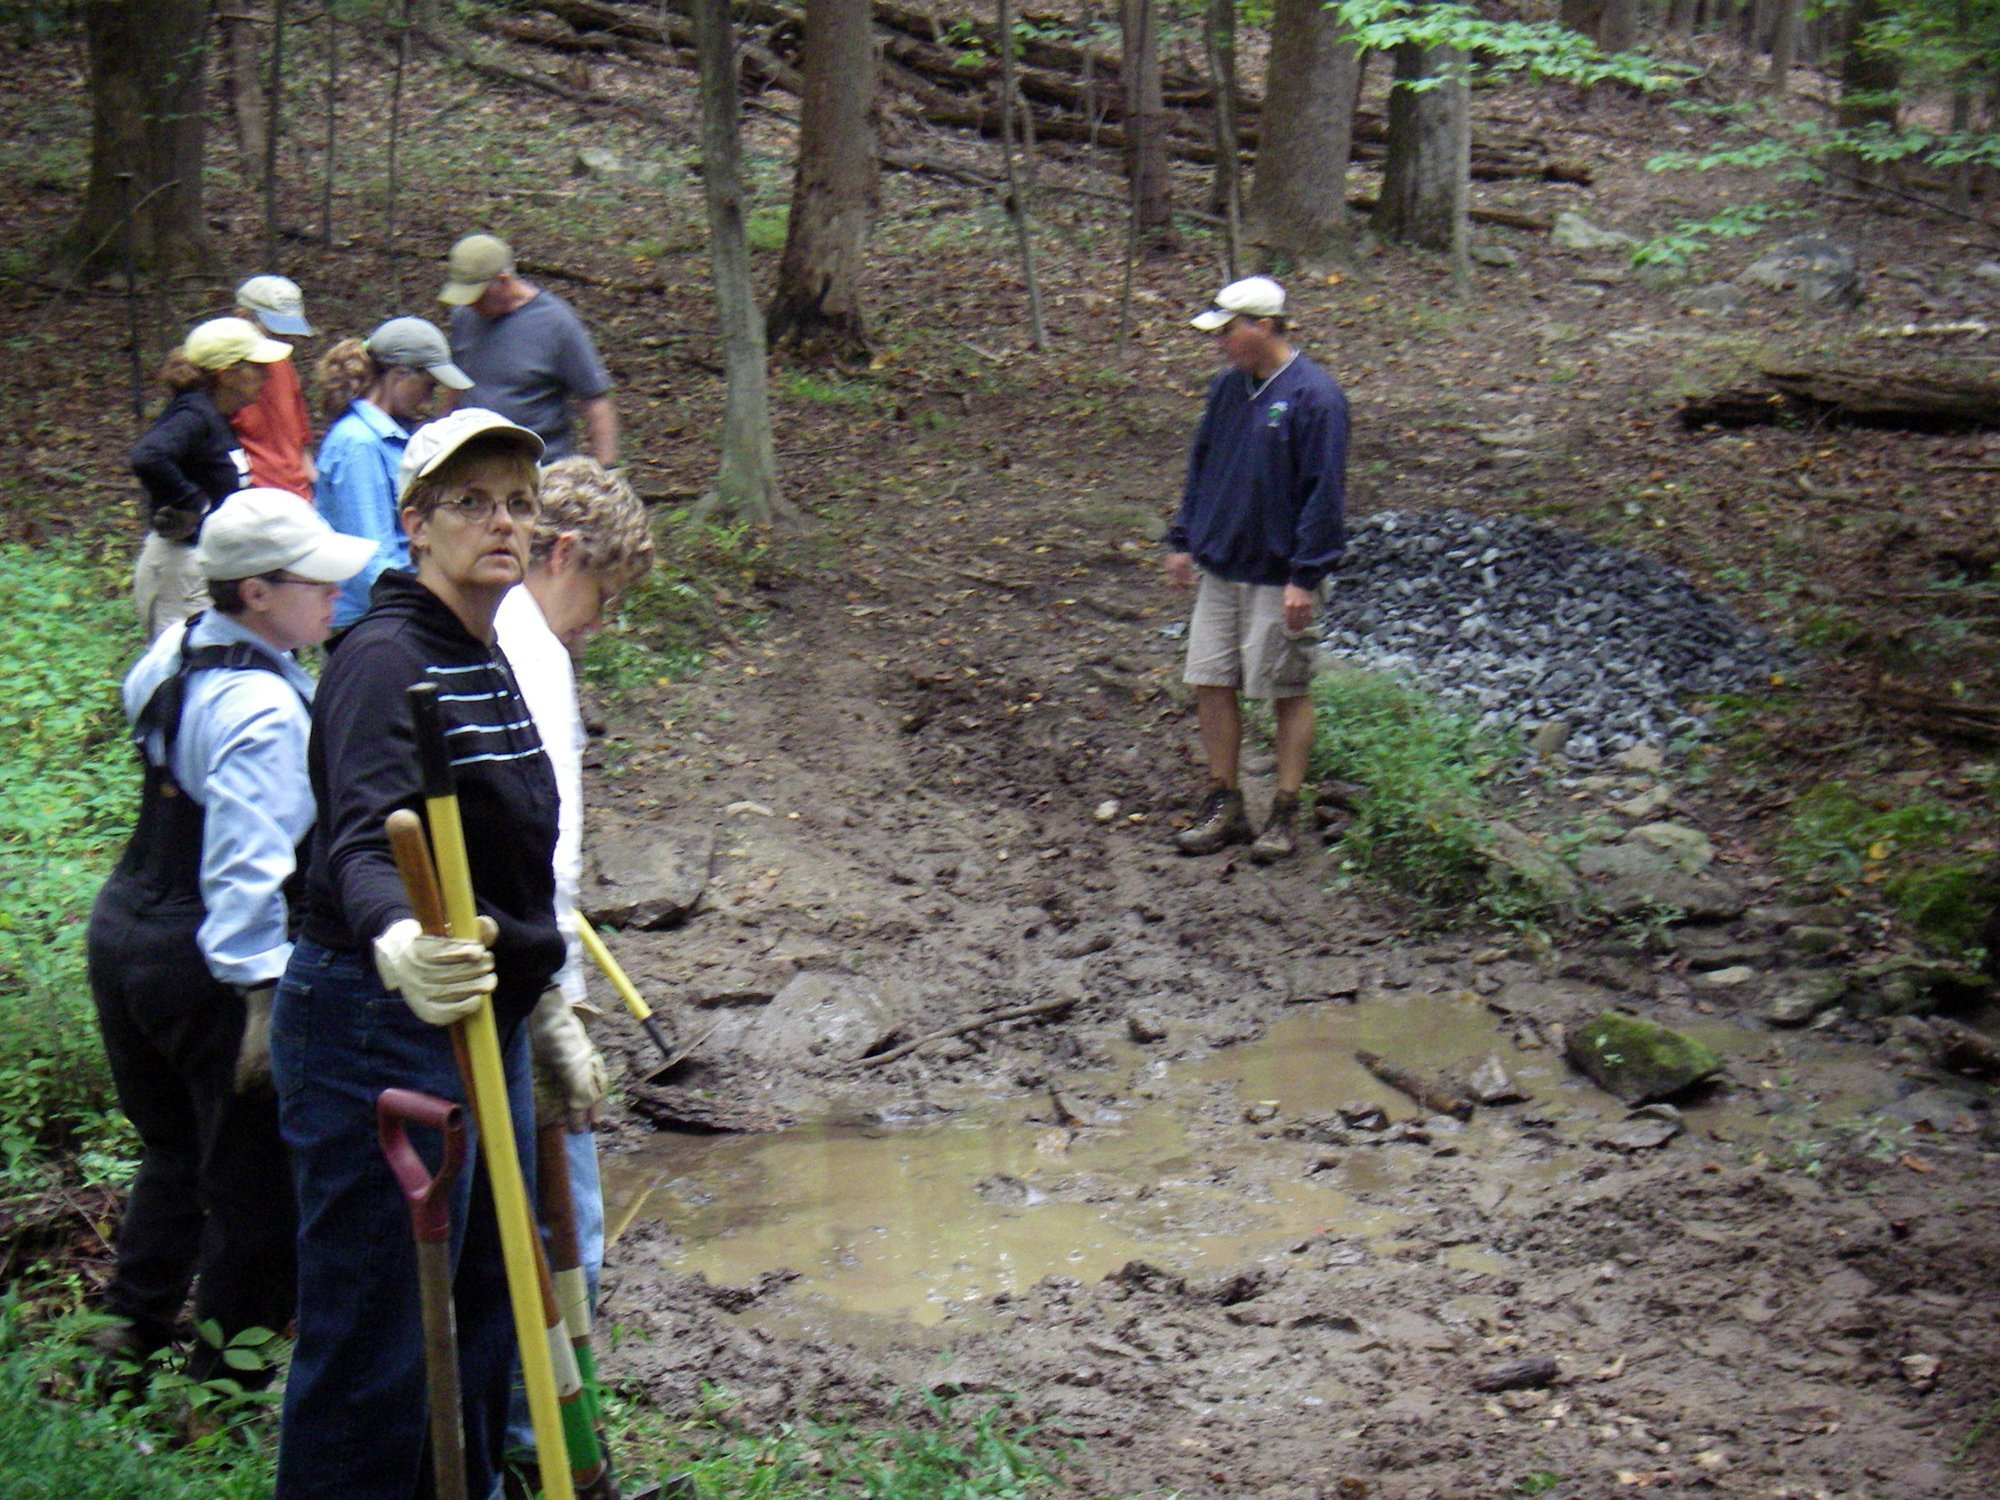 CWA members working on culvert project with DNR